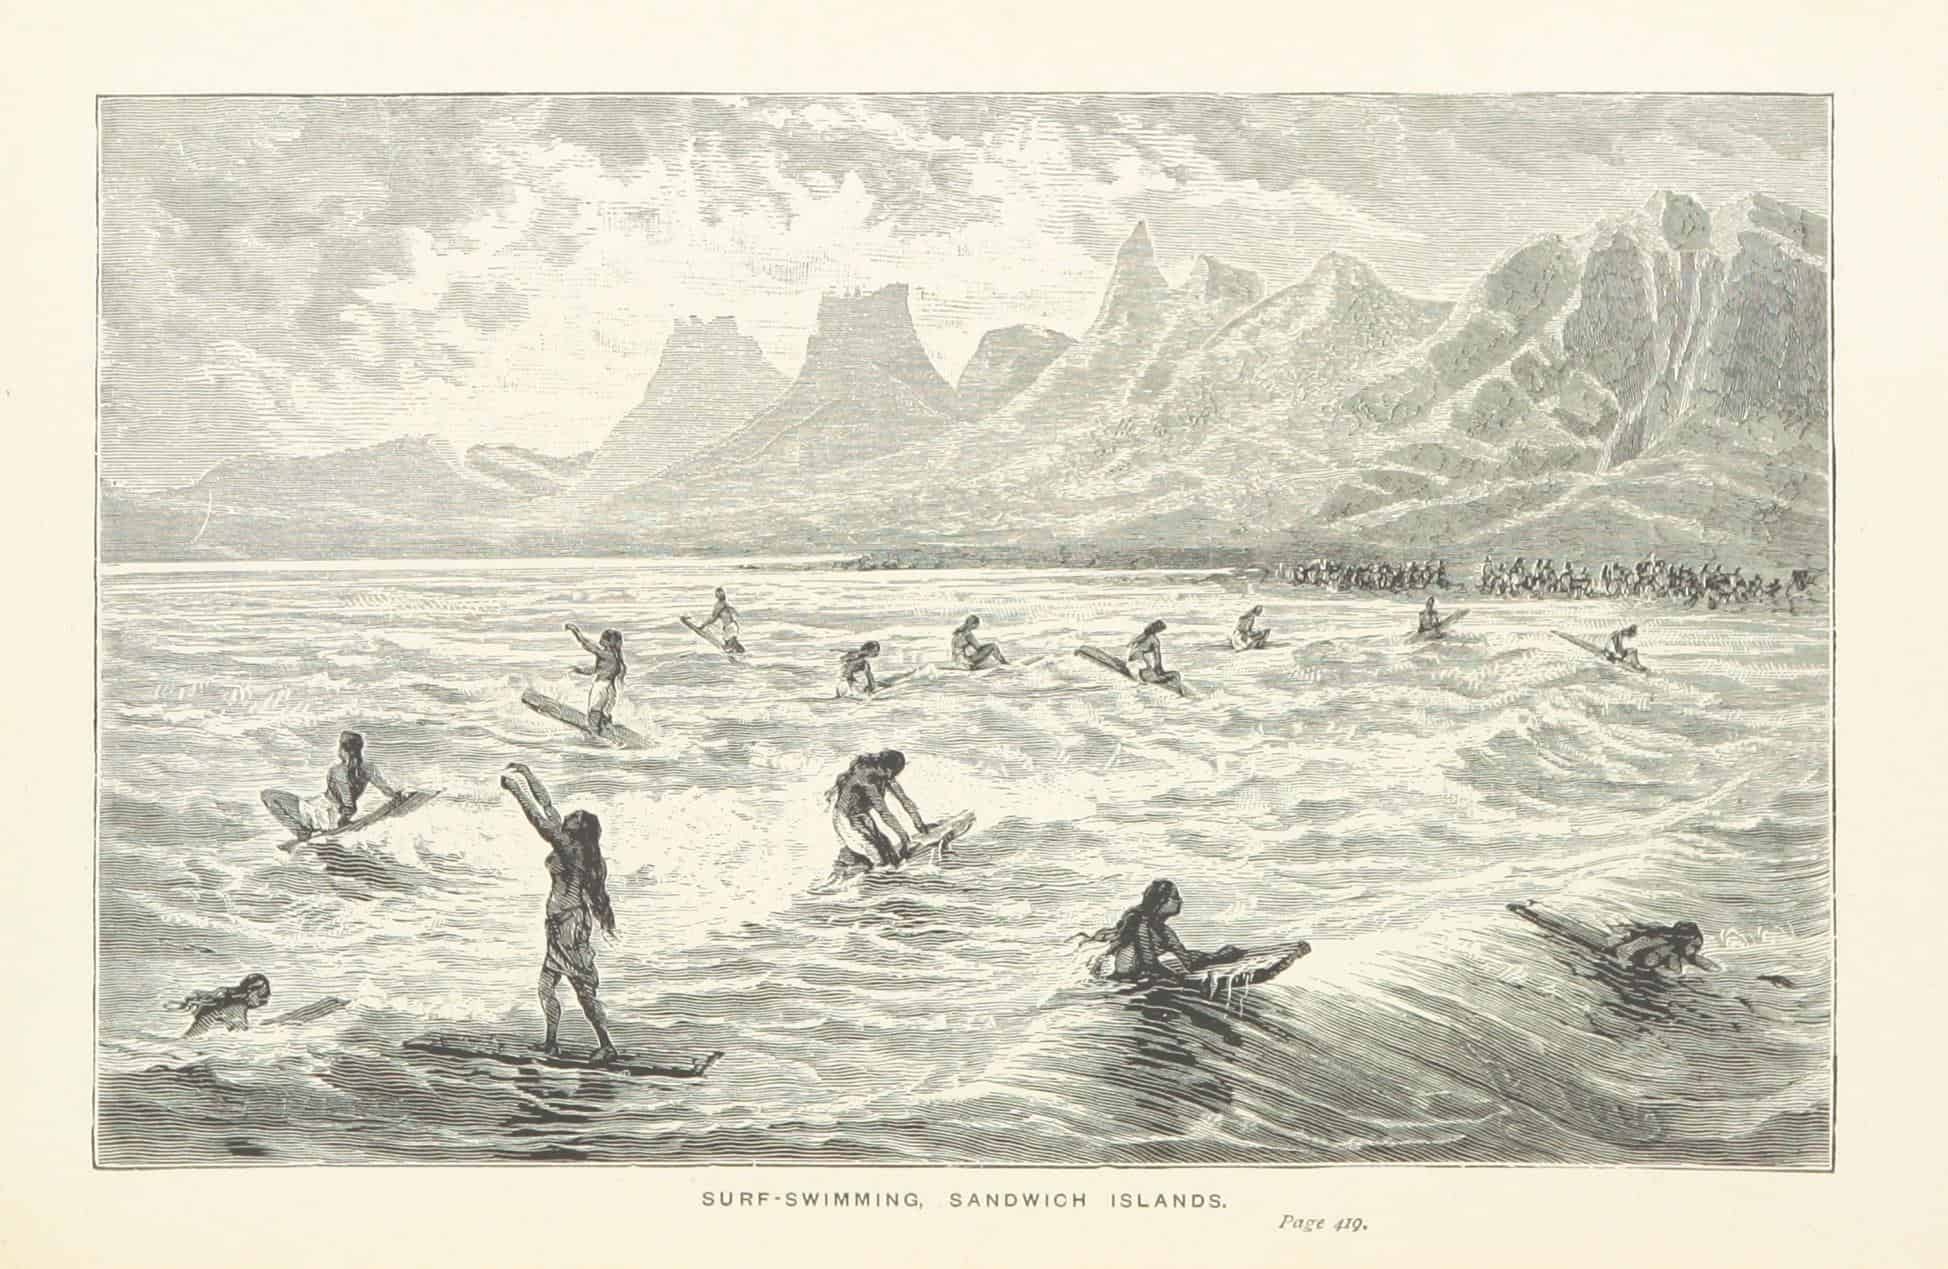 pencil drawing entitled surf-swimming Sandwich Islands showing 14 women surfers from from the 1800s catching waves while a large crowd watches from shore in Hawaii